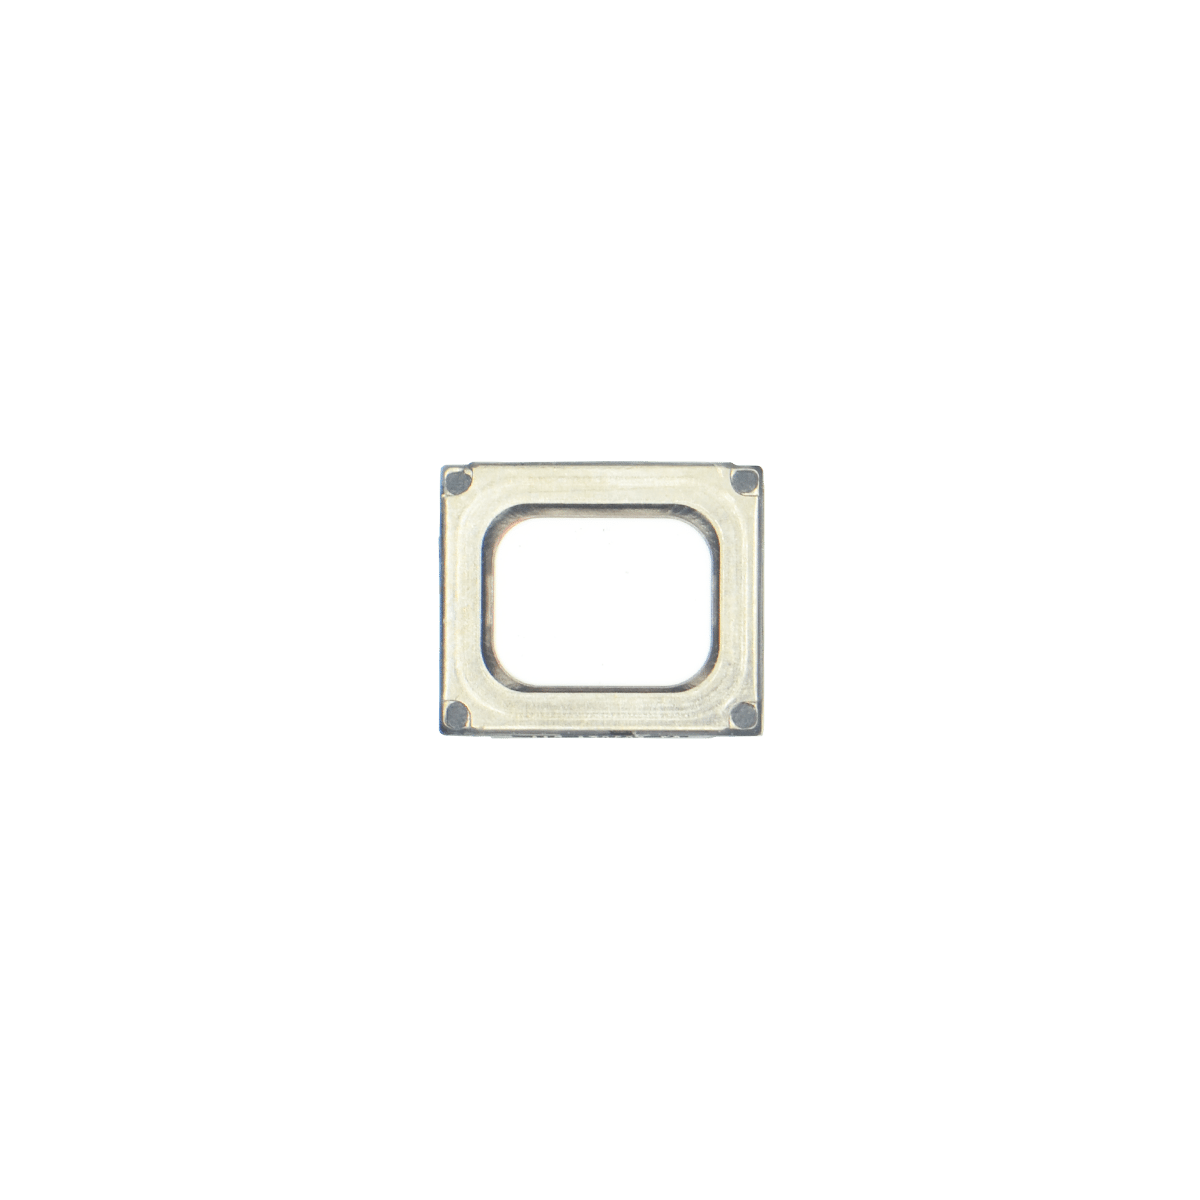 Ear Speaker Replacement for OnePlus 5